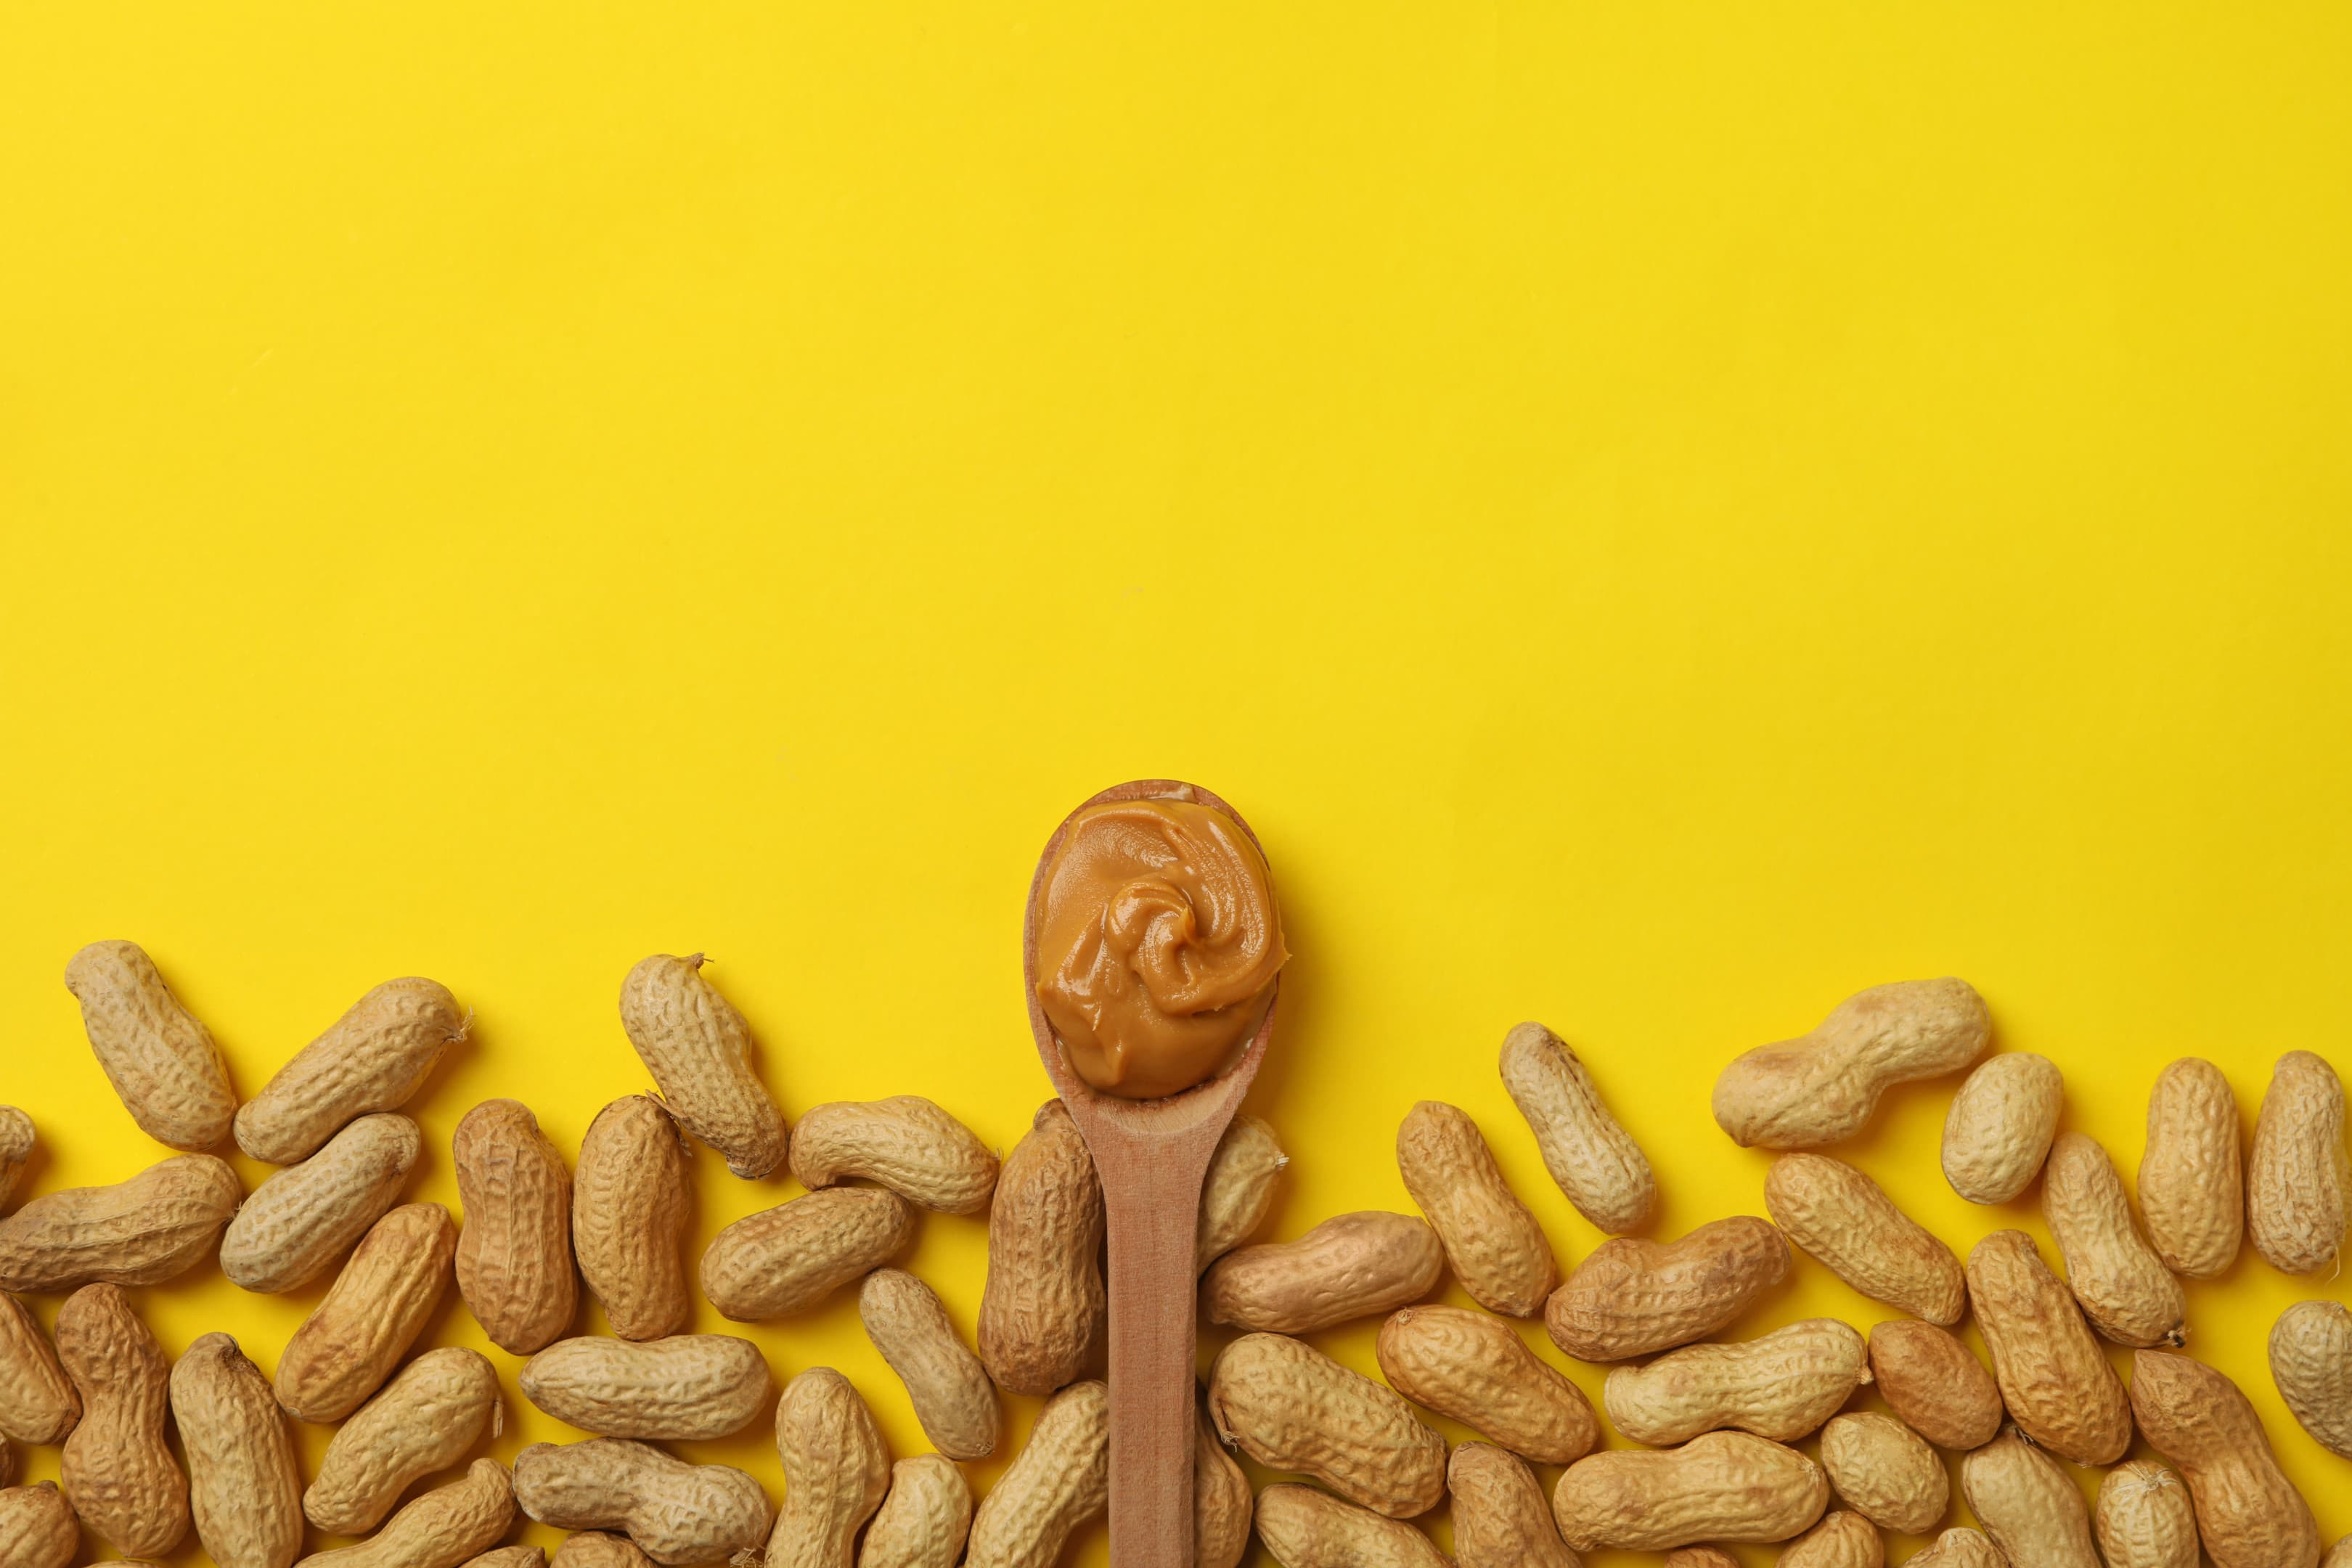 Peanut and spoon with peanut butter on yellow table